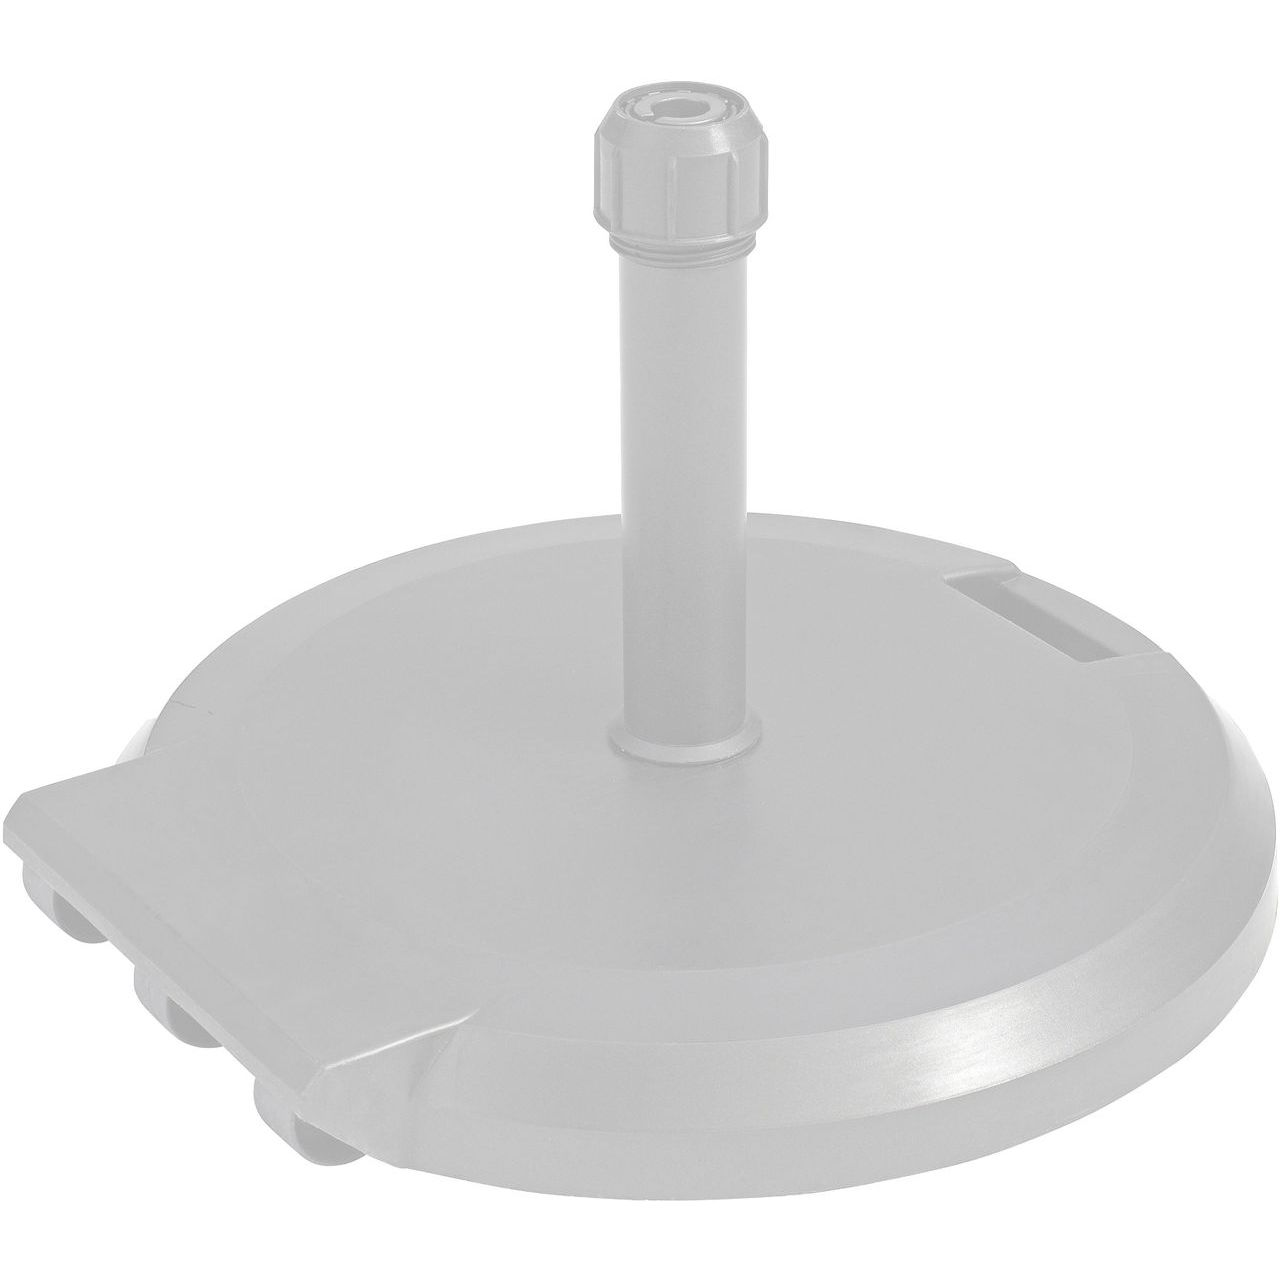 Grosfillex 84 lbs Freestanding Umbrella Base with Wheels in White